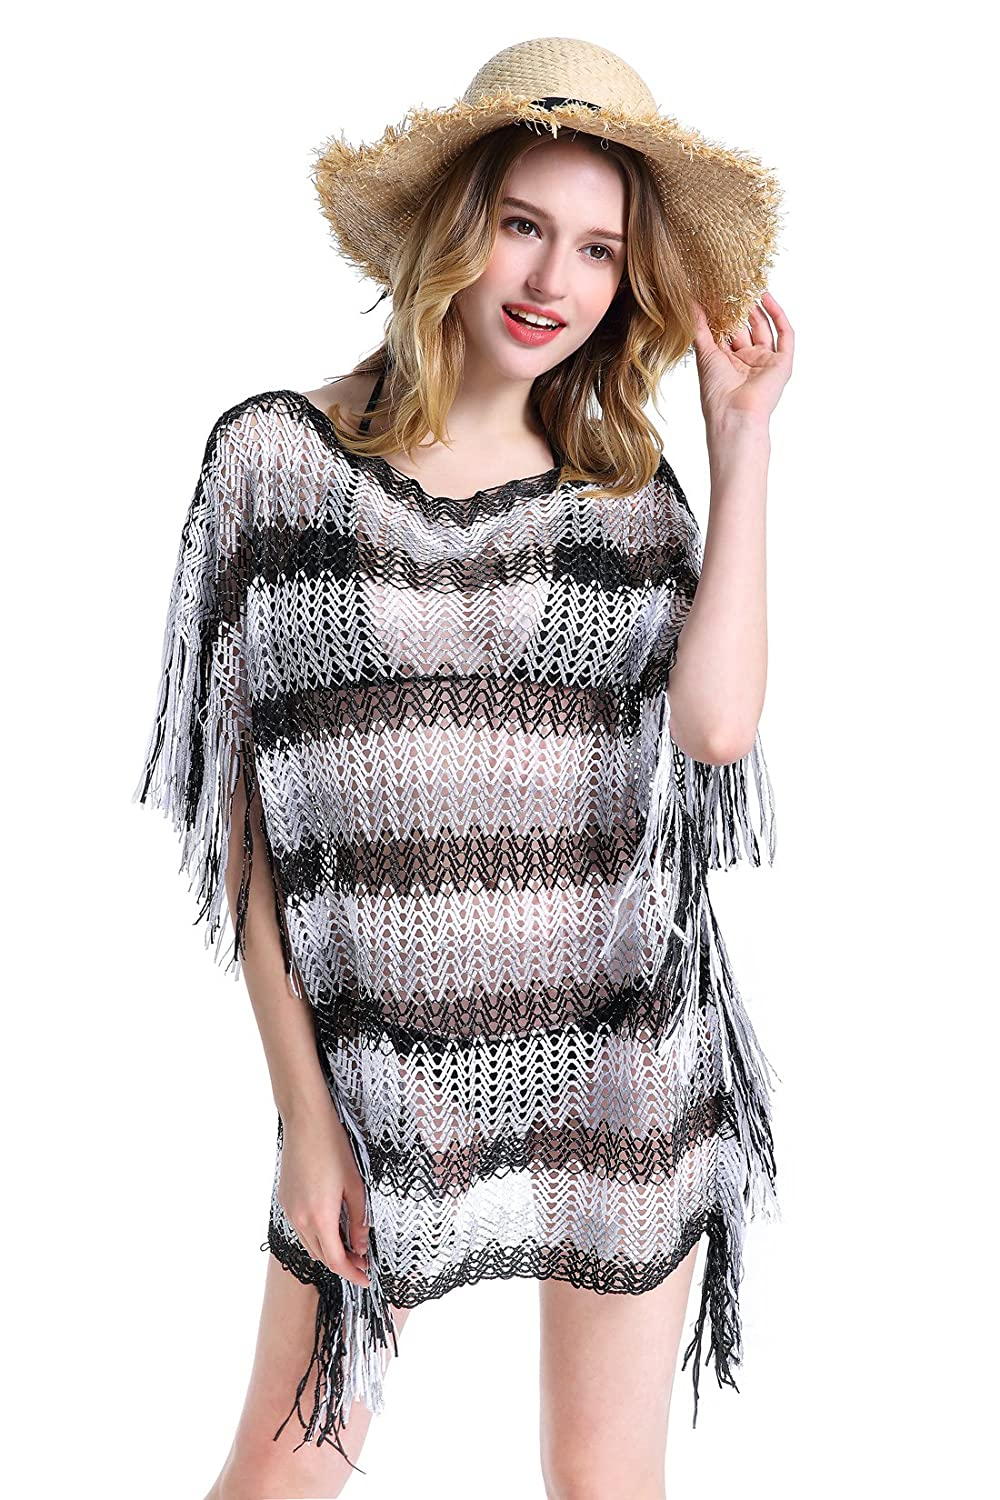 cd5c60732f Beach Cover up: fashionable stripes design£» mesh cover up let your whole  body look Looming and protect your skin against the sun to help keep you  cool and ...